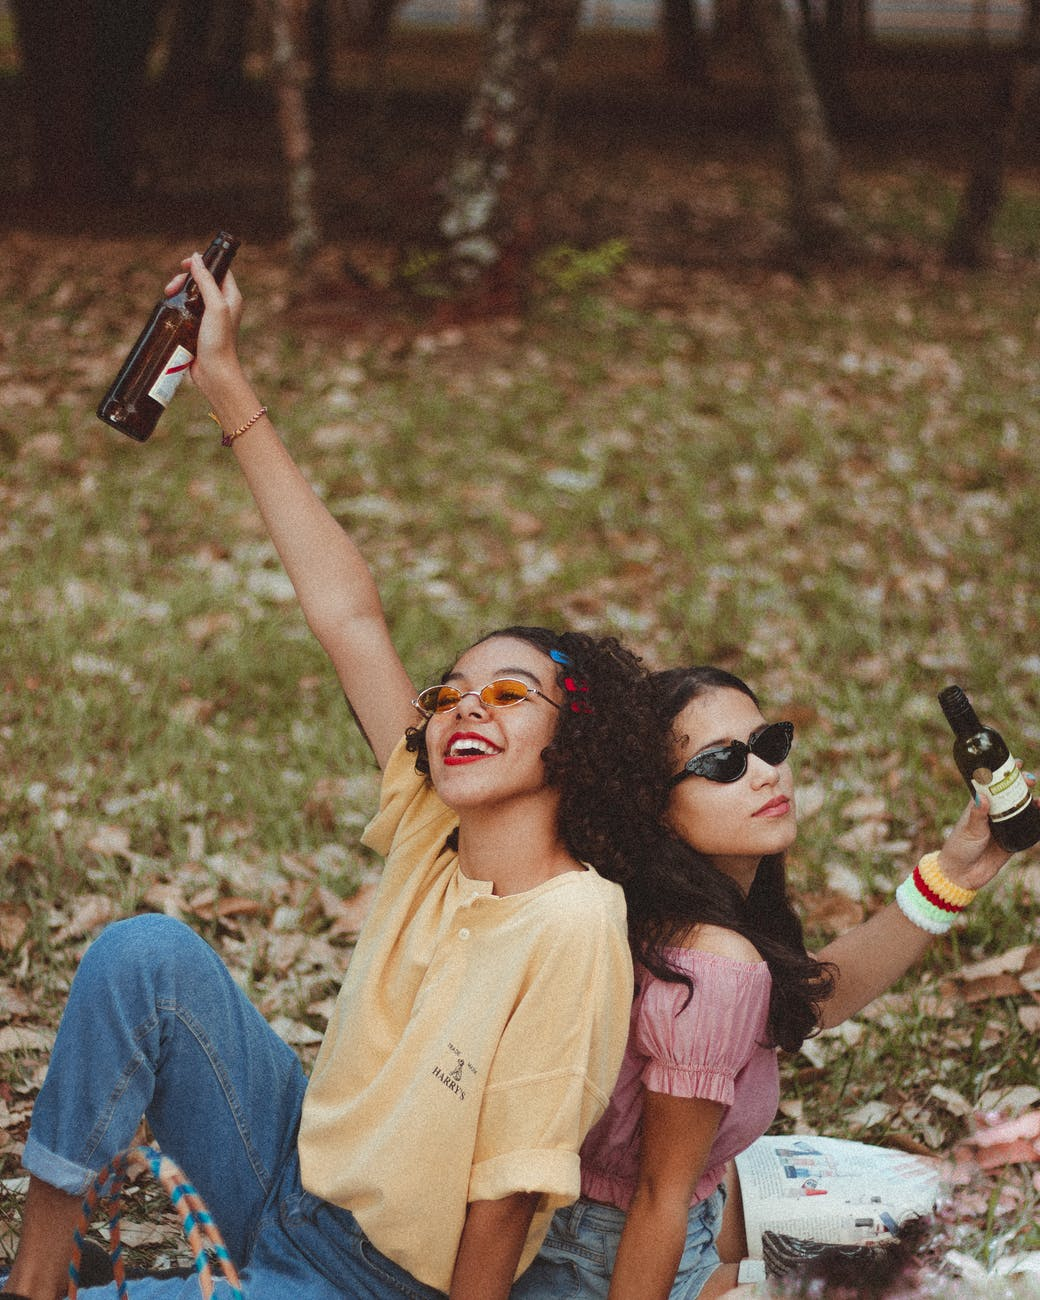 Two girlfriends sitting down with a bottle of drink in their hands